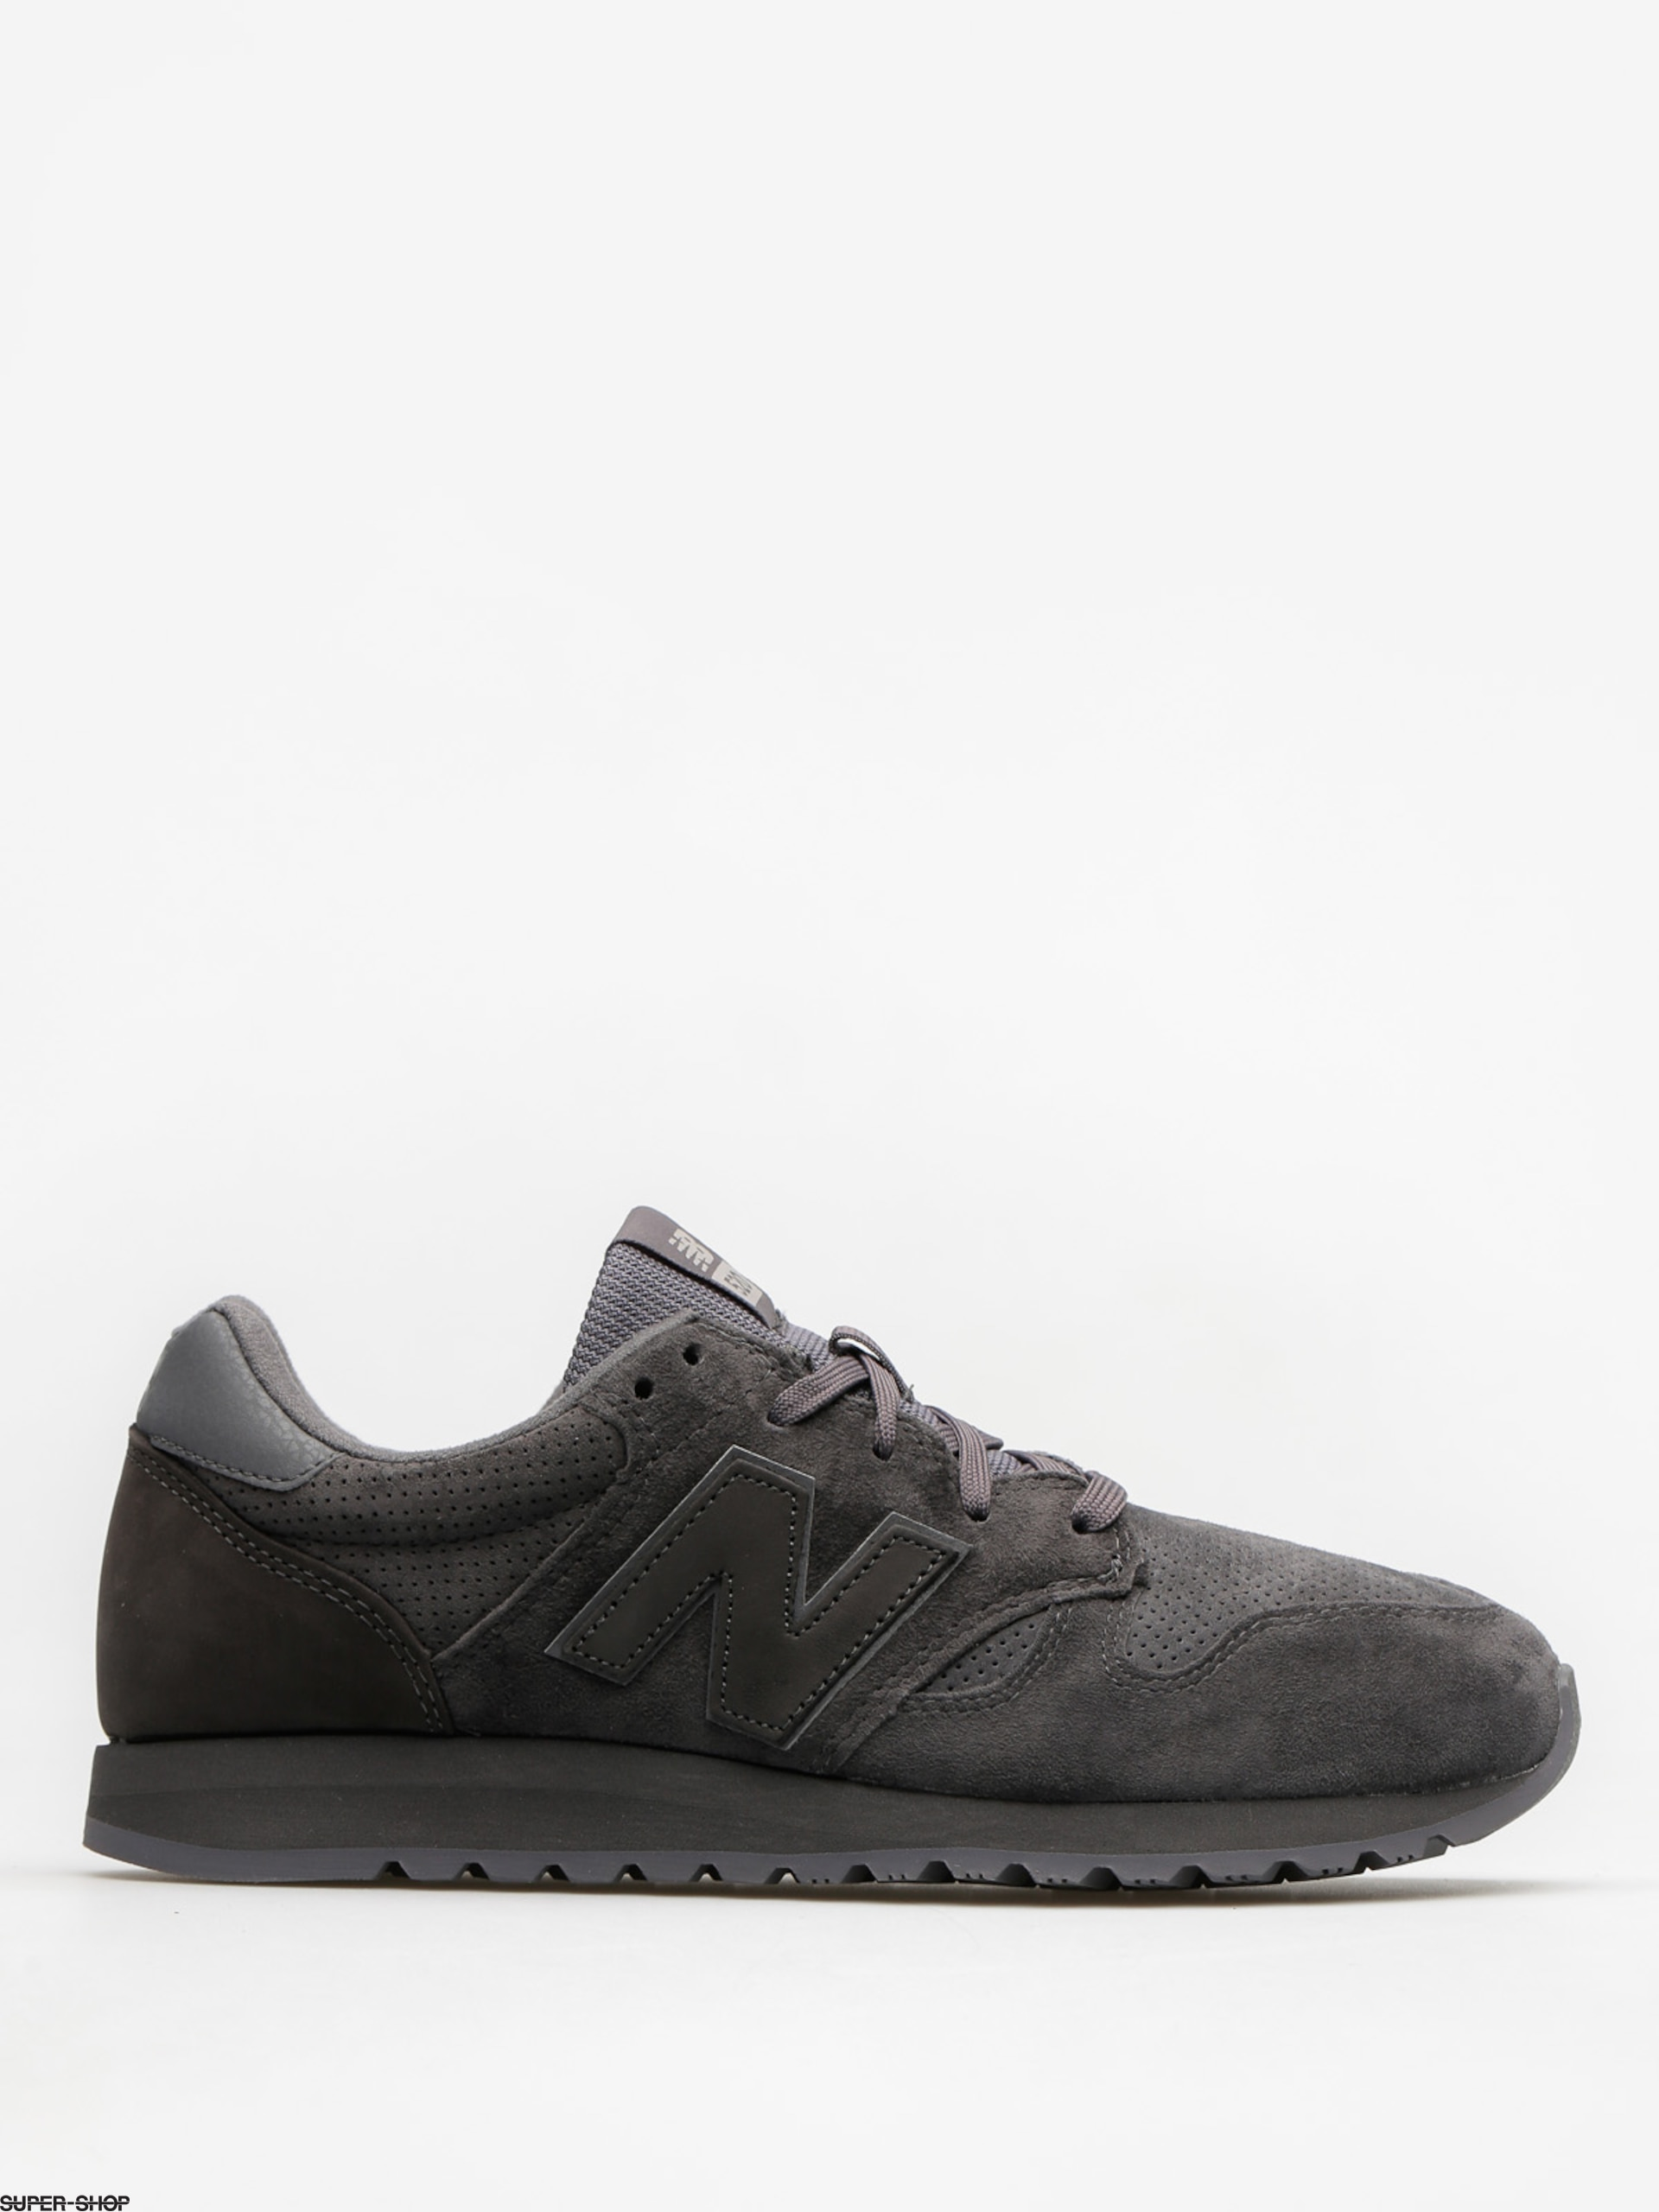 New Balance Shoes 520